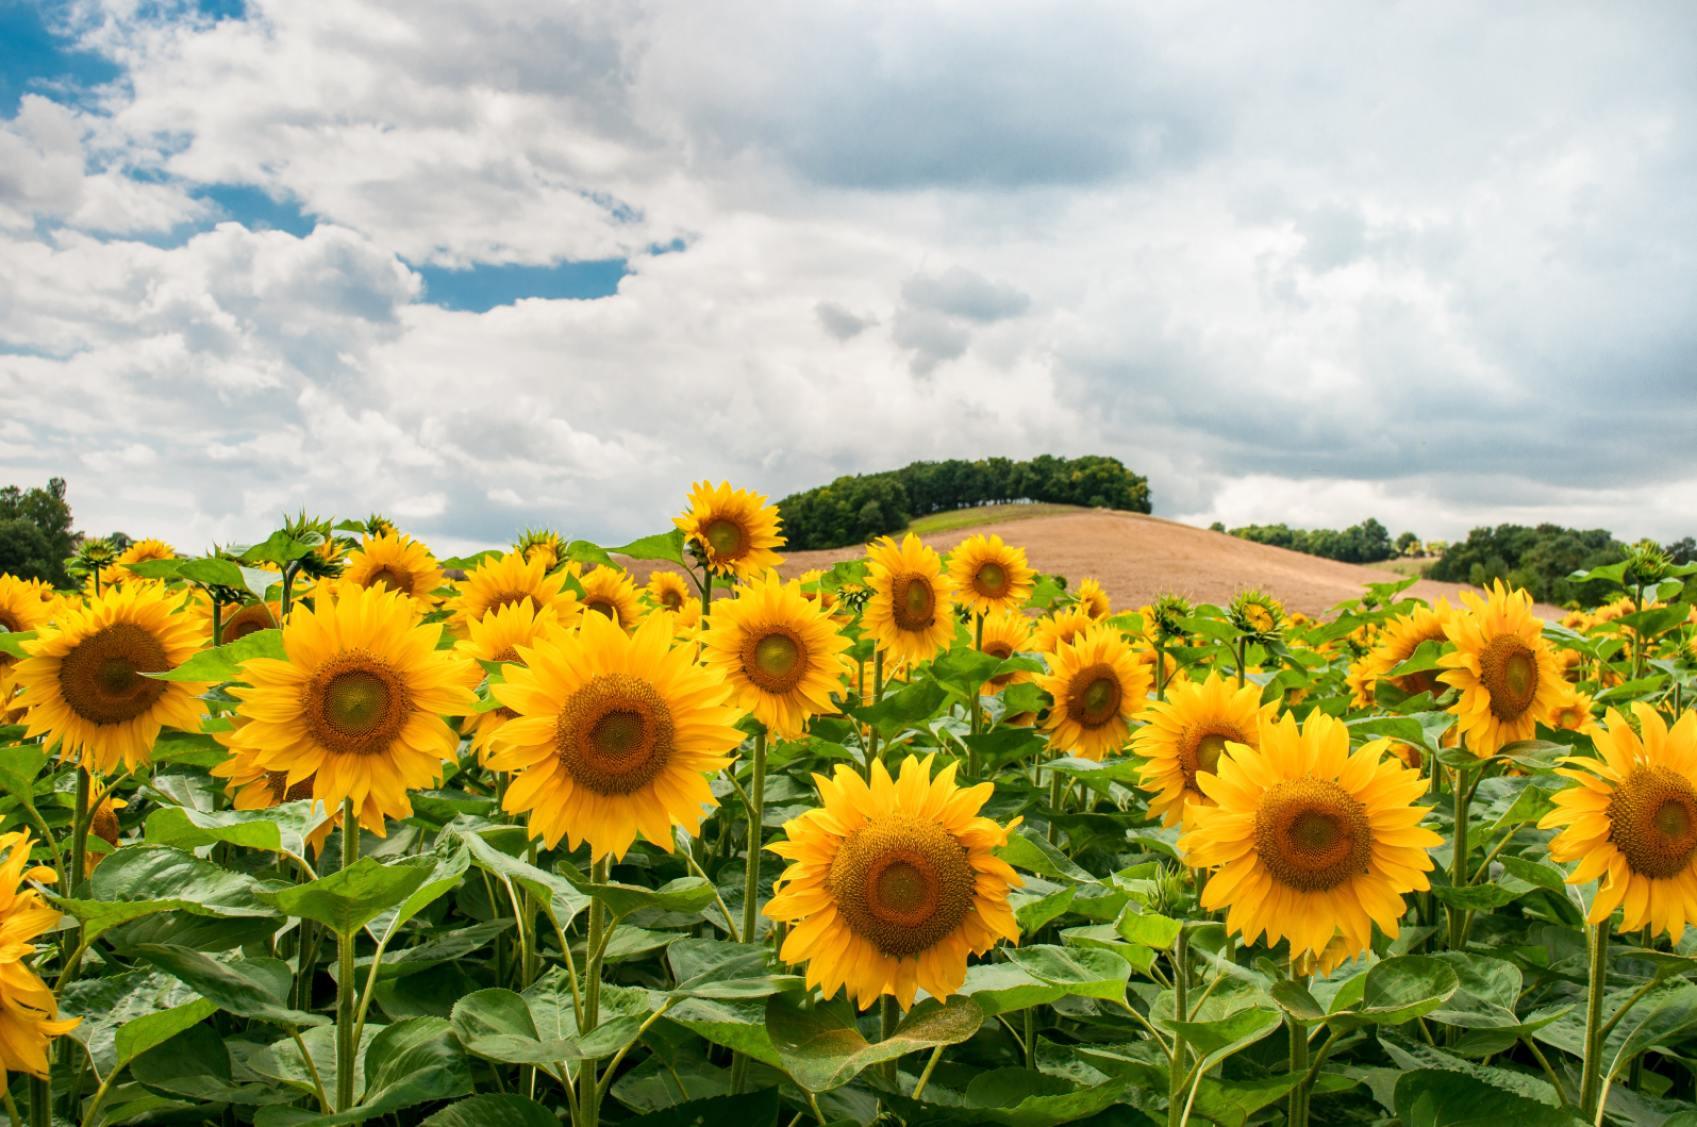 Field of Sunflowers - Original image